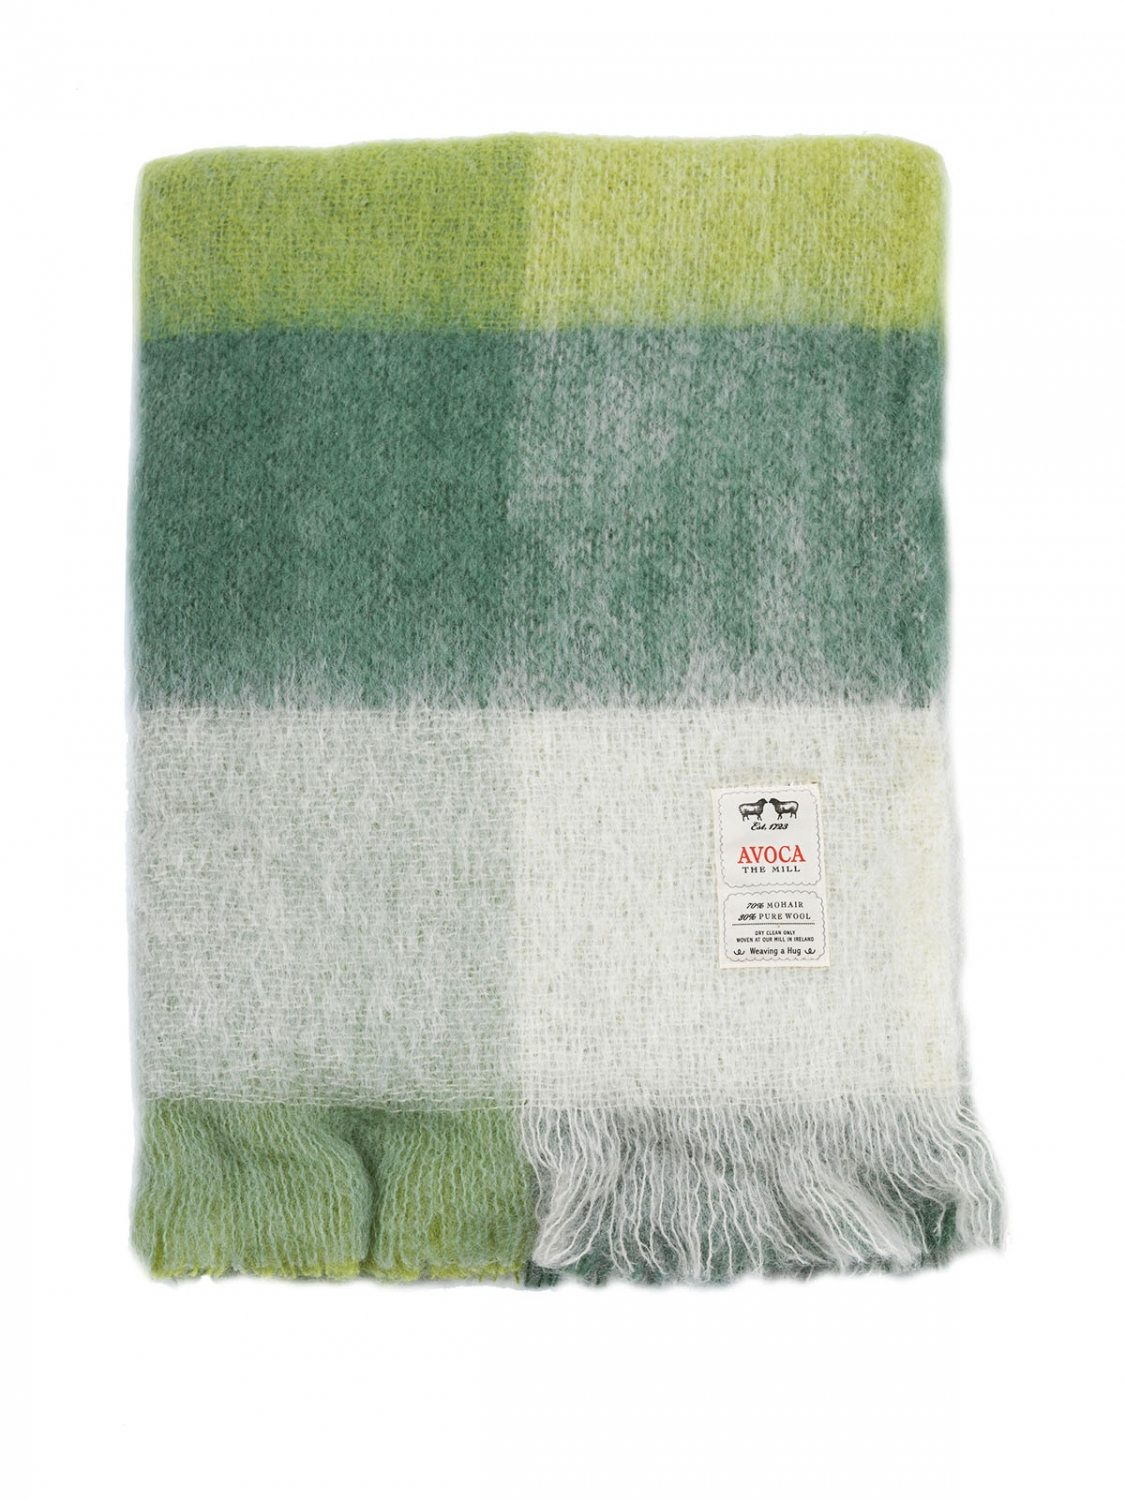 "Avoca Mohair Throw 56"" x 40"" Made in Ireland (M192)"